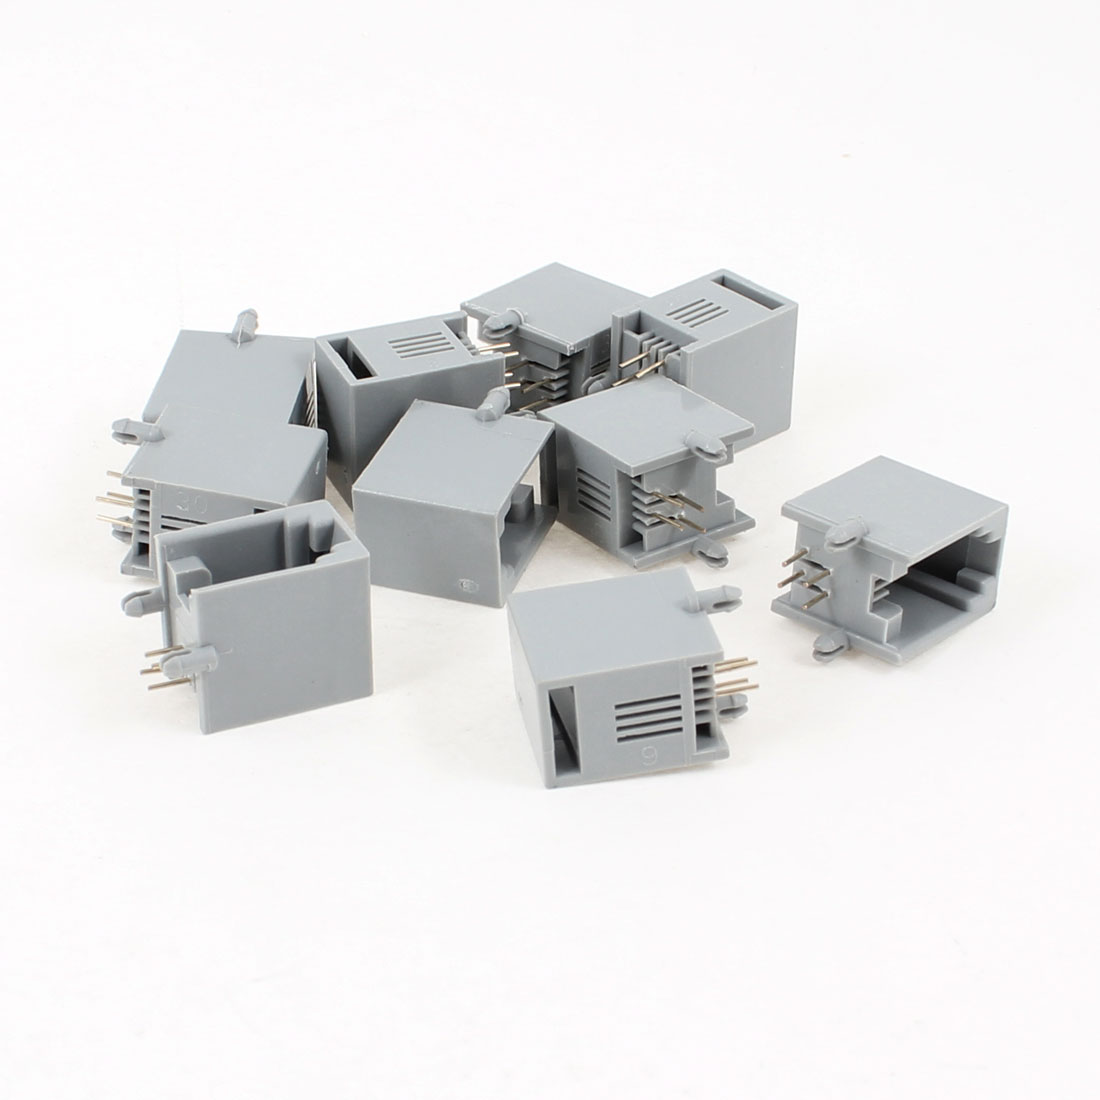 10 Pcs Unshielded RJ9 4P4C Network Modular PCB Connector Jacks Gray